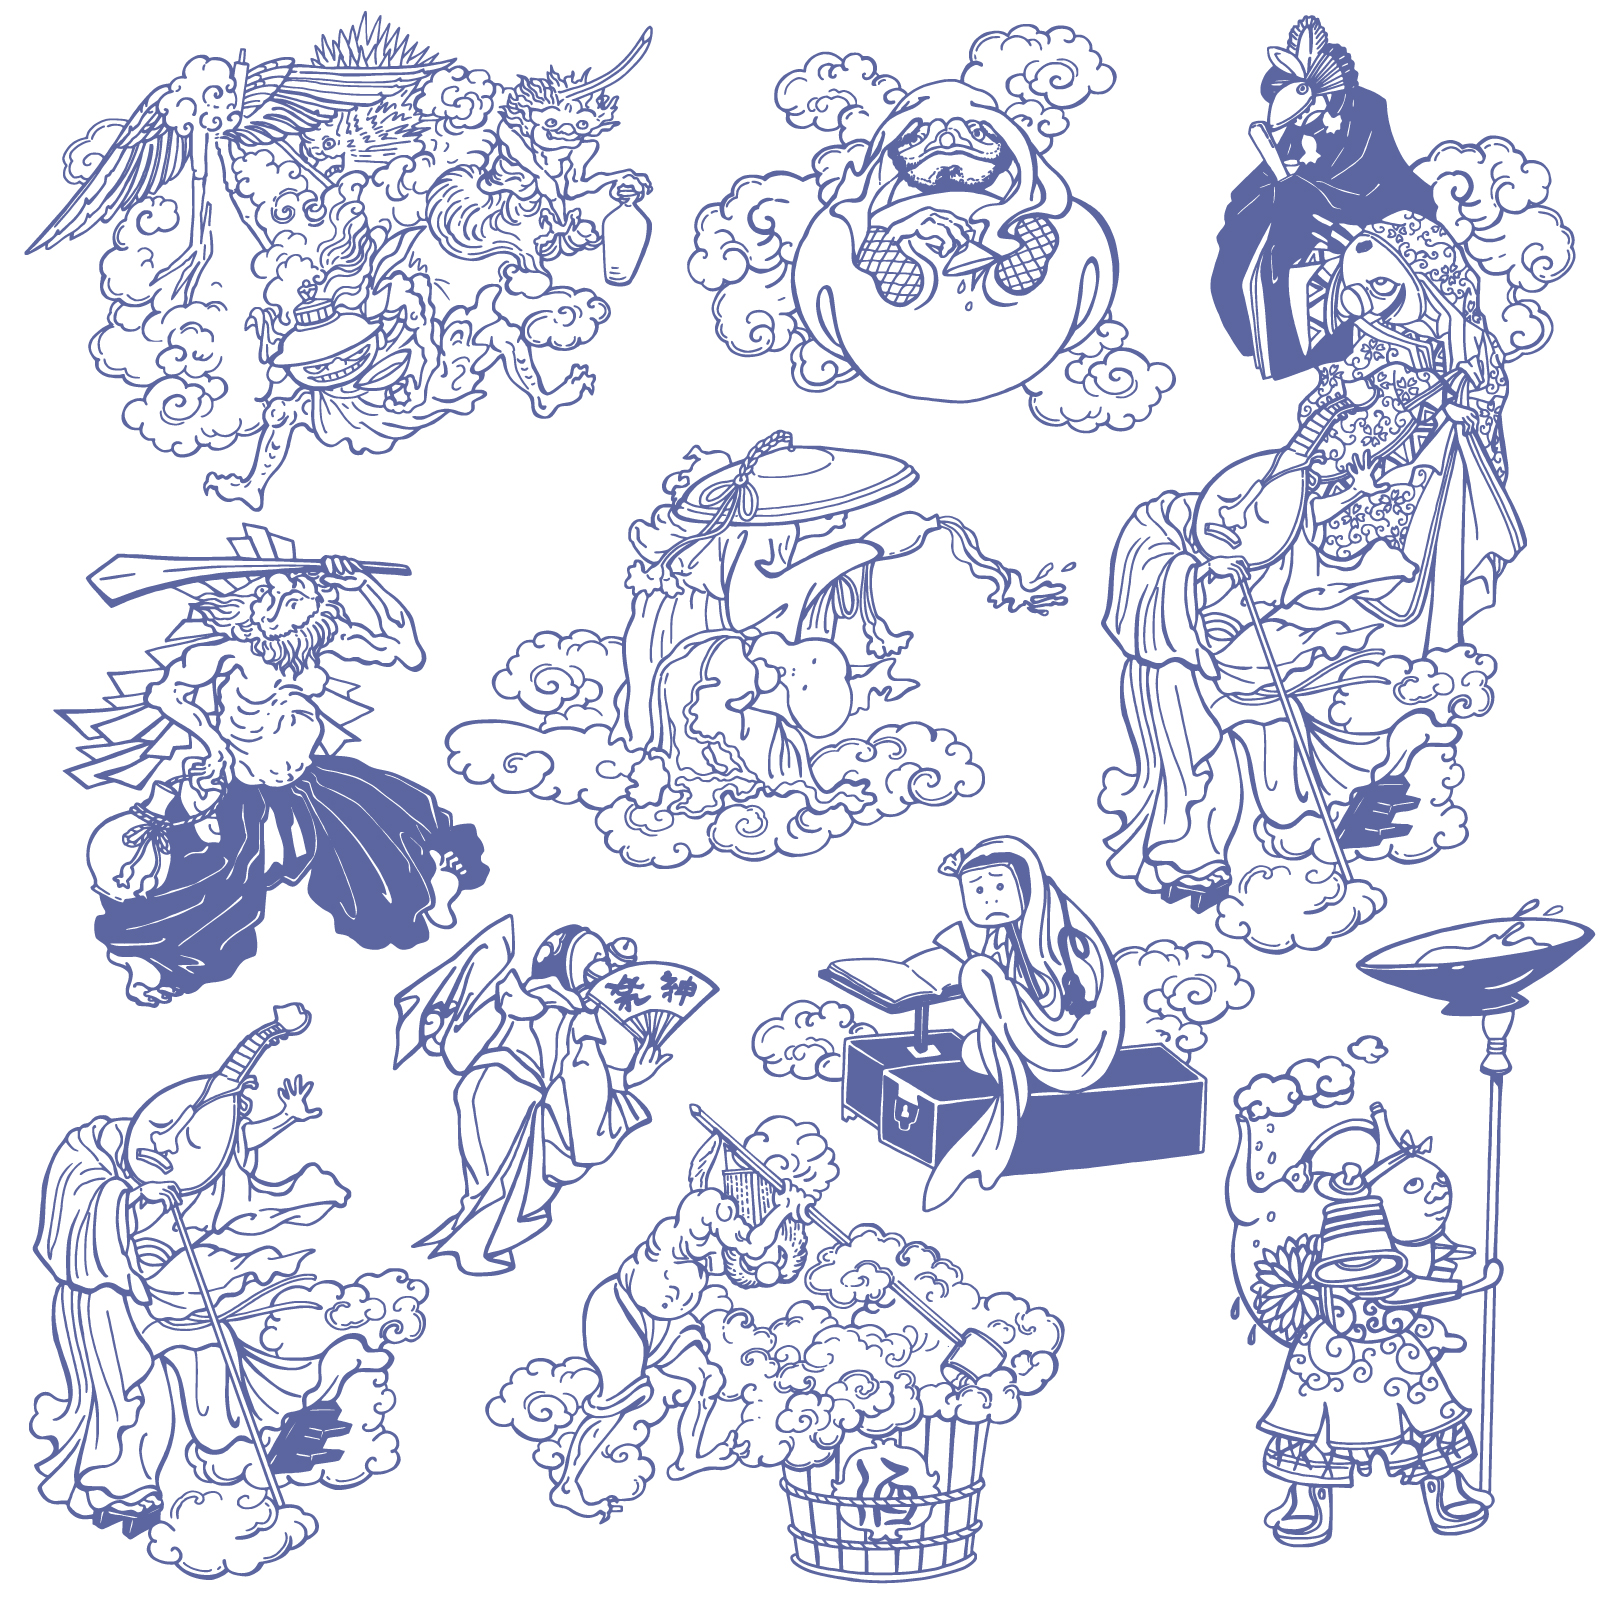 The character of Chinese mythology hand-drawn illustration vector diagram - Illustrations Vectors ESP Free Download